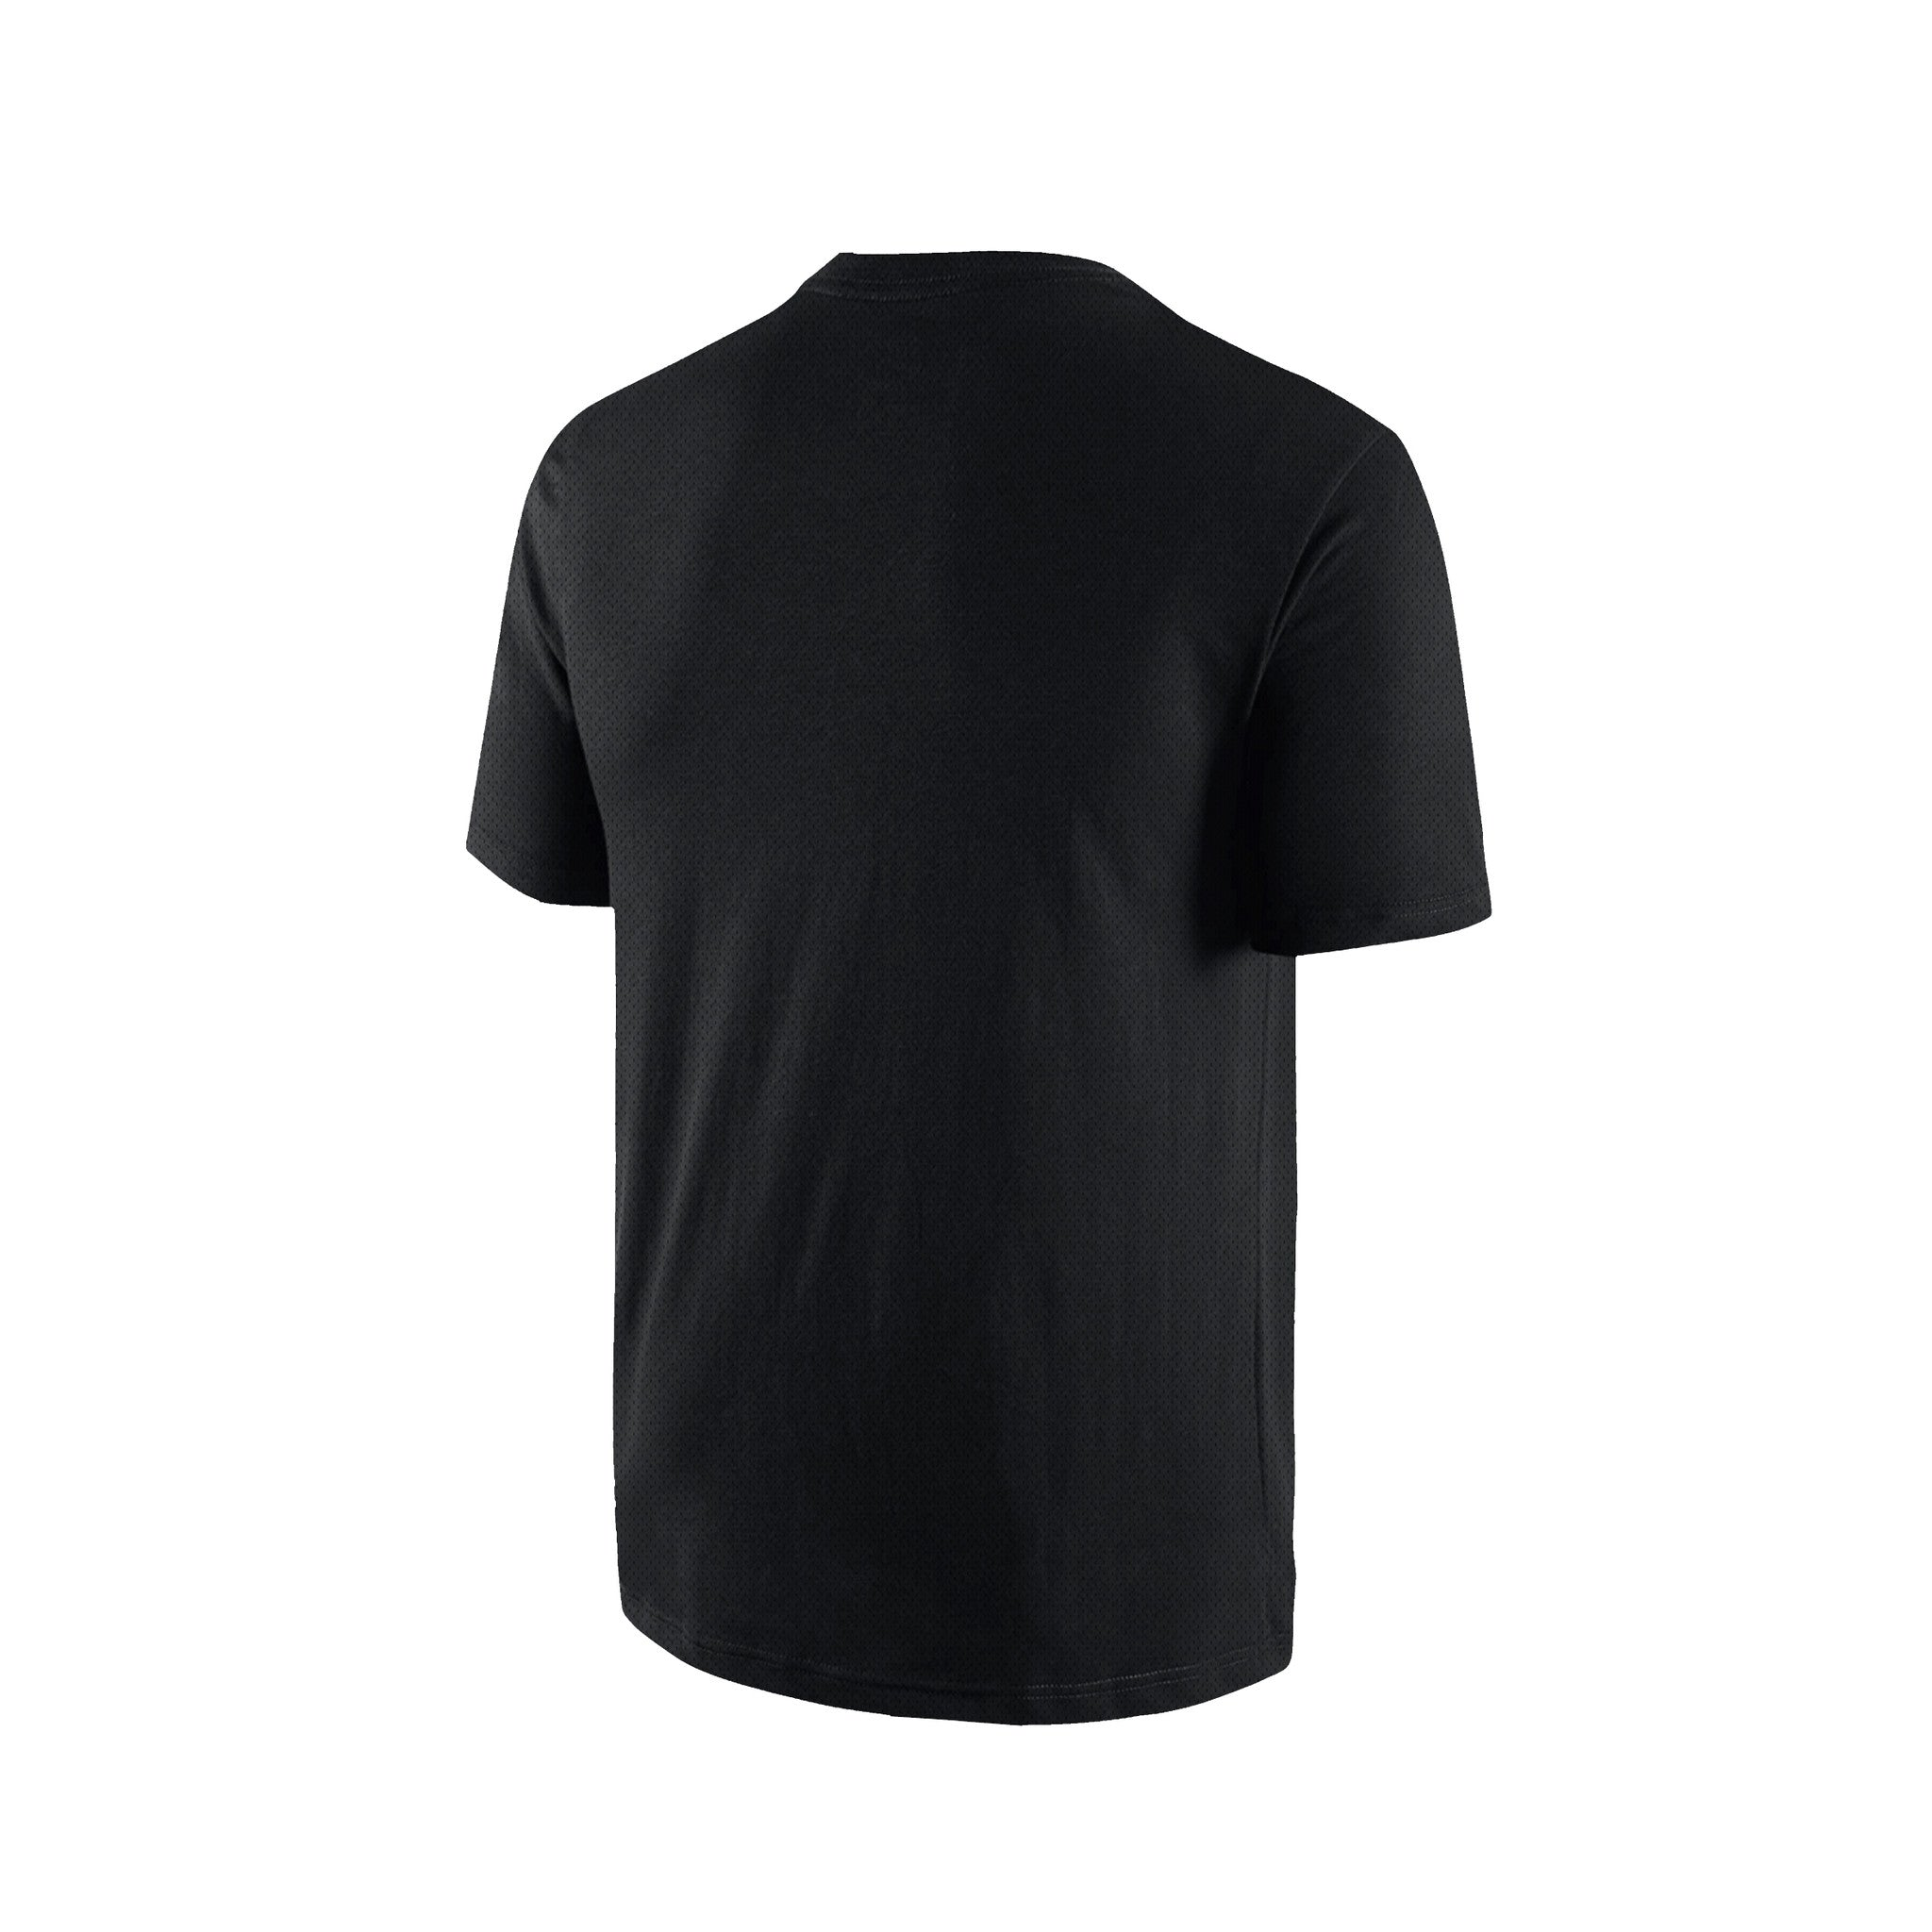 SportyFish Black Series black t-shirt: Mahi-mahi back view